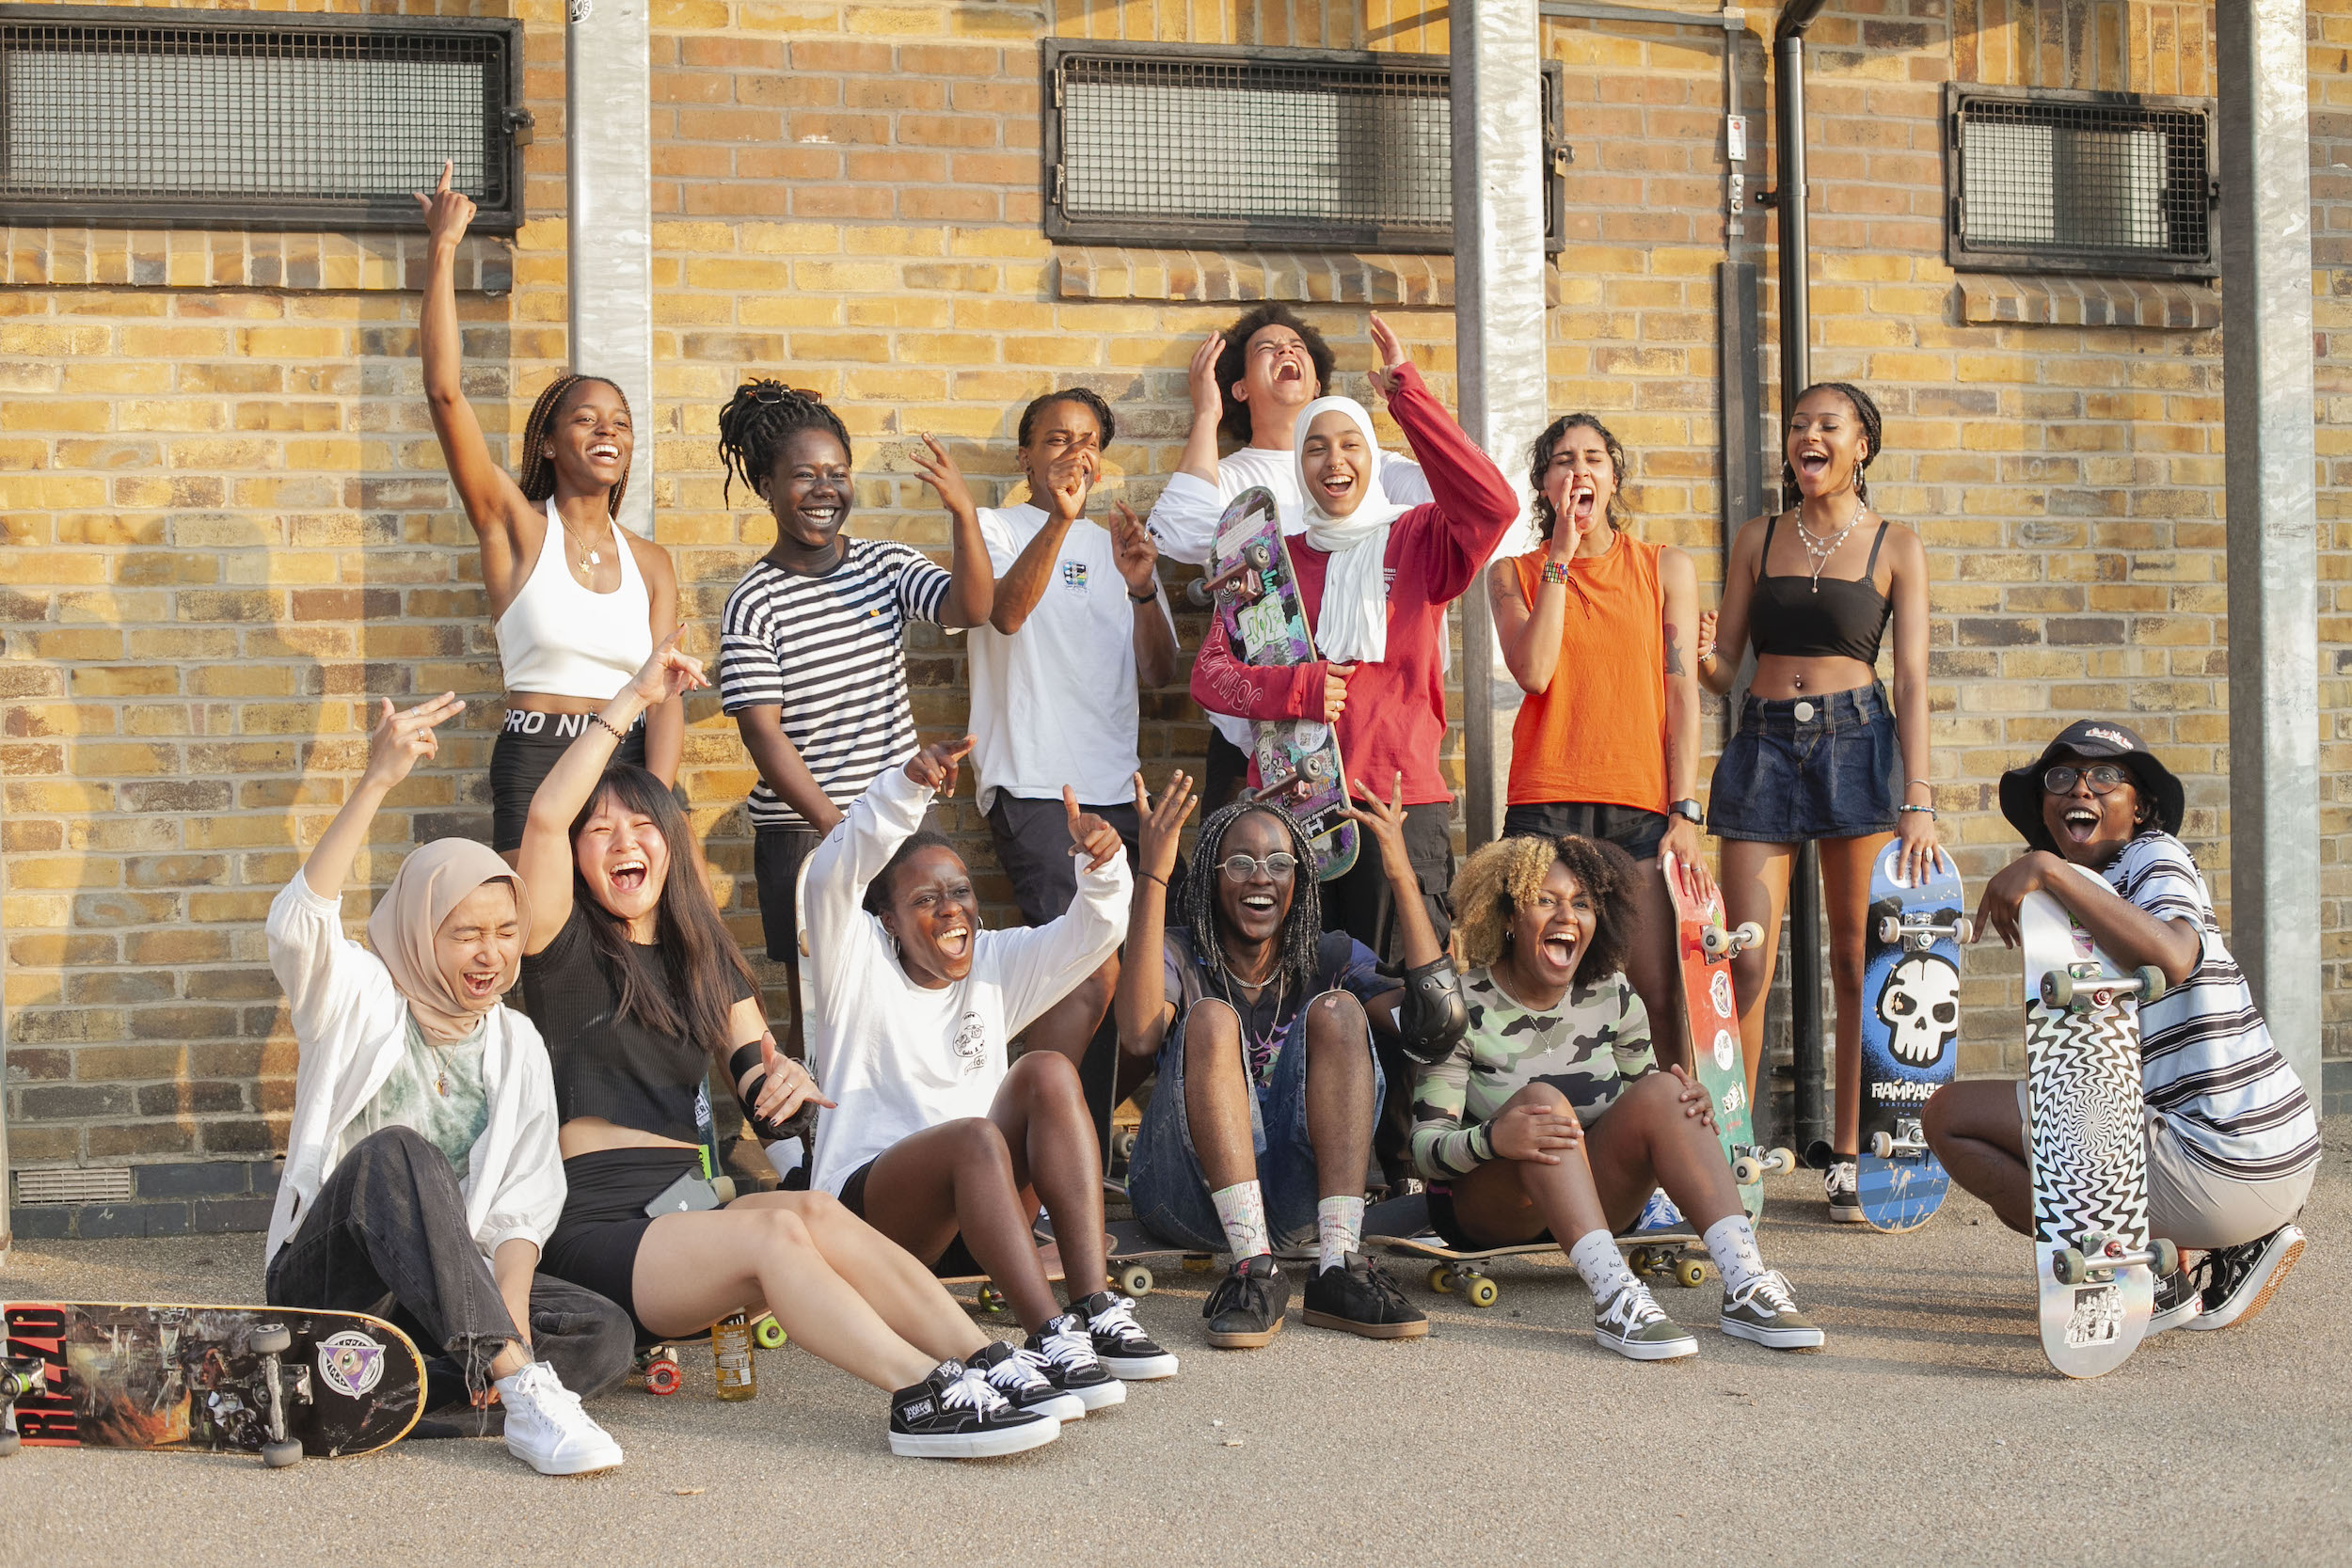 Gals 'n' Pals and Empowerment Through Skateboarding